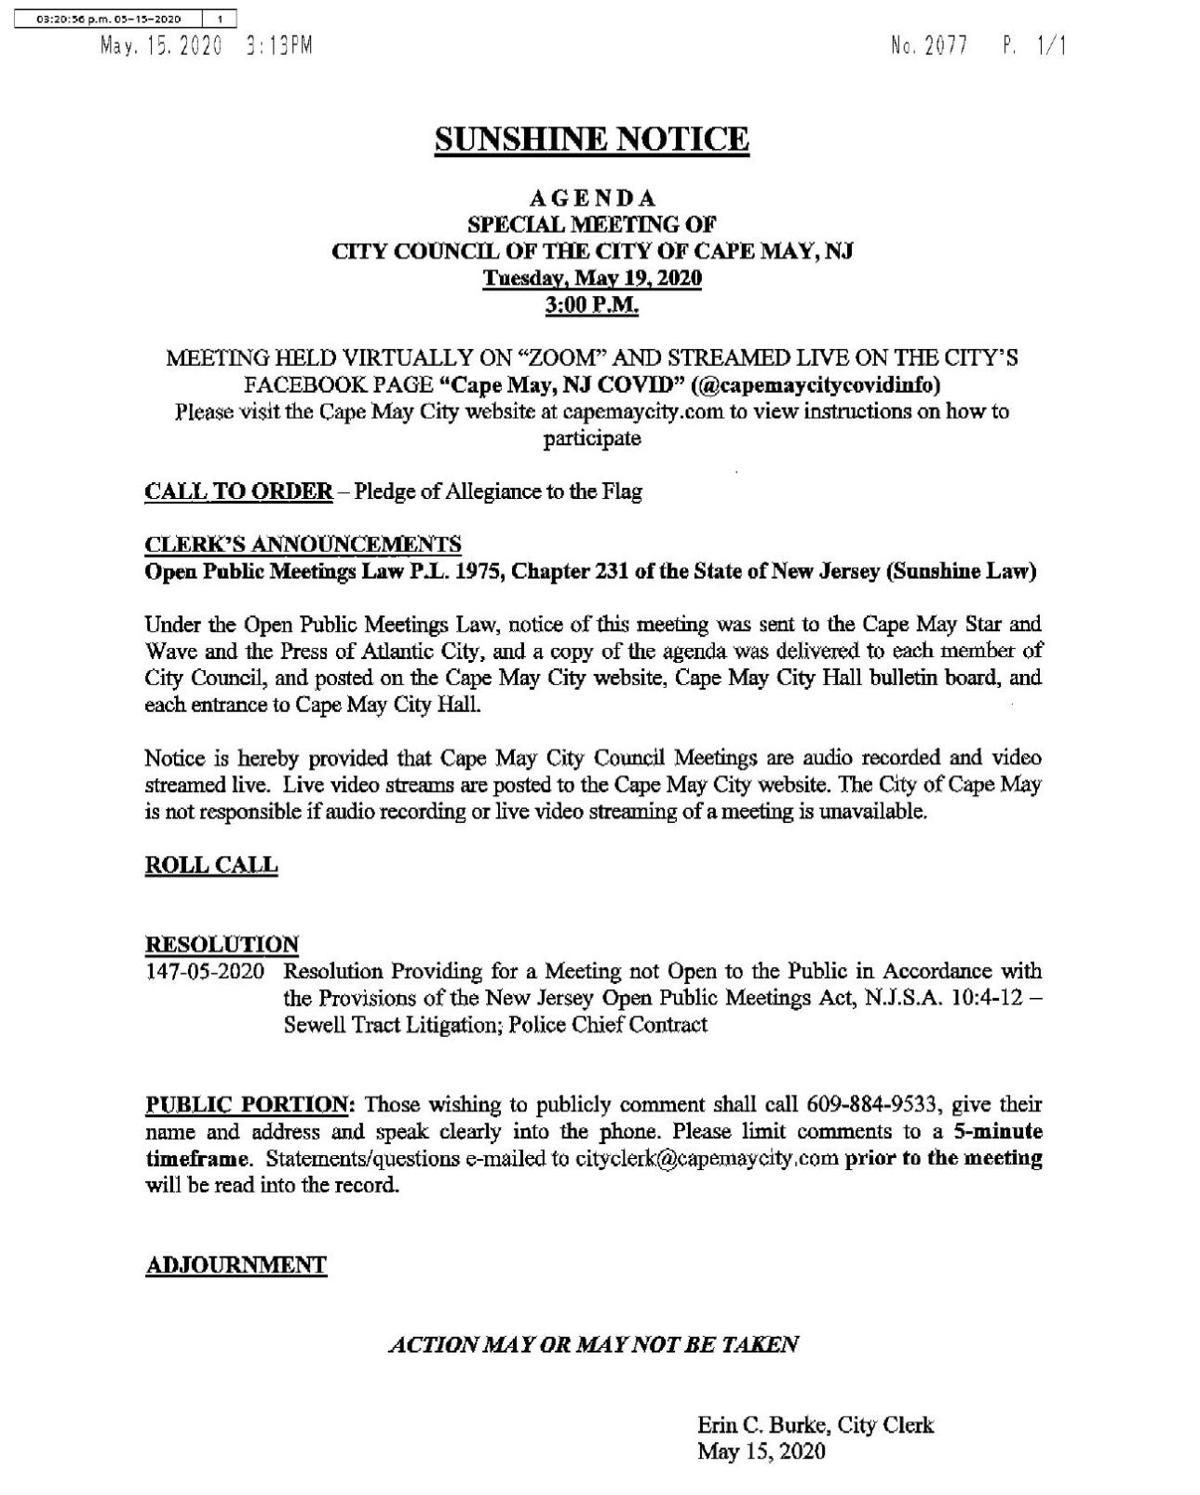 Cape May Special Meeting Agenda May 19, 2020